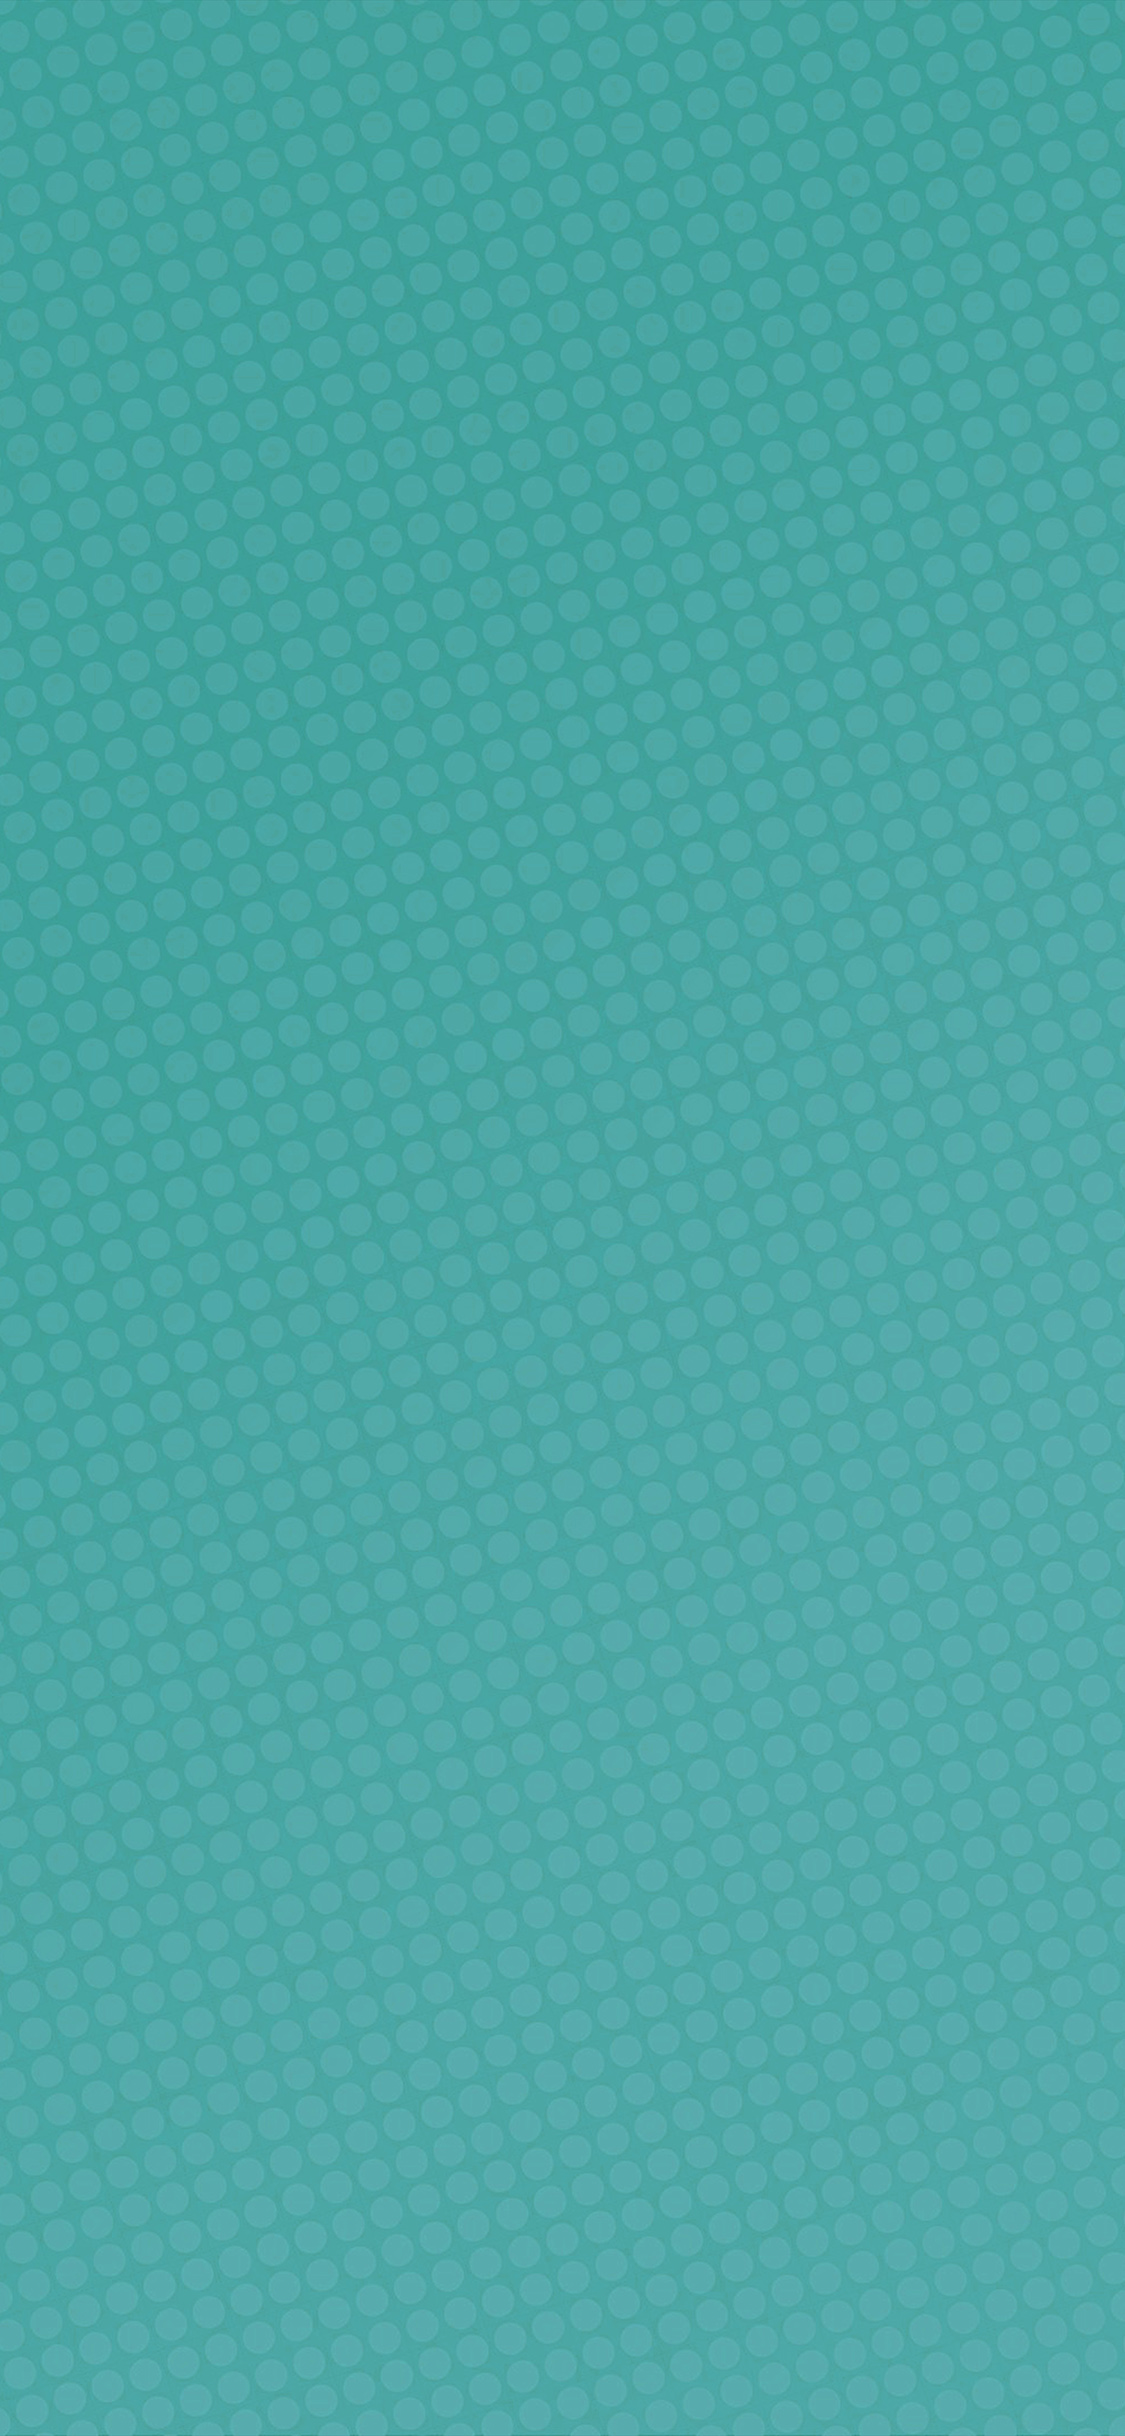 iPhoneXpapers.com-Apple-iPhone-wallpaper-vq49-dots-blue-green-abstract-pattern